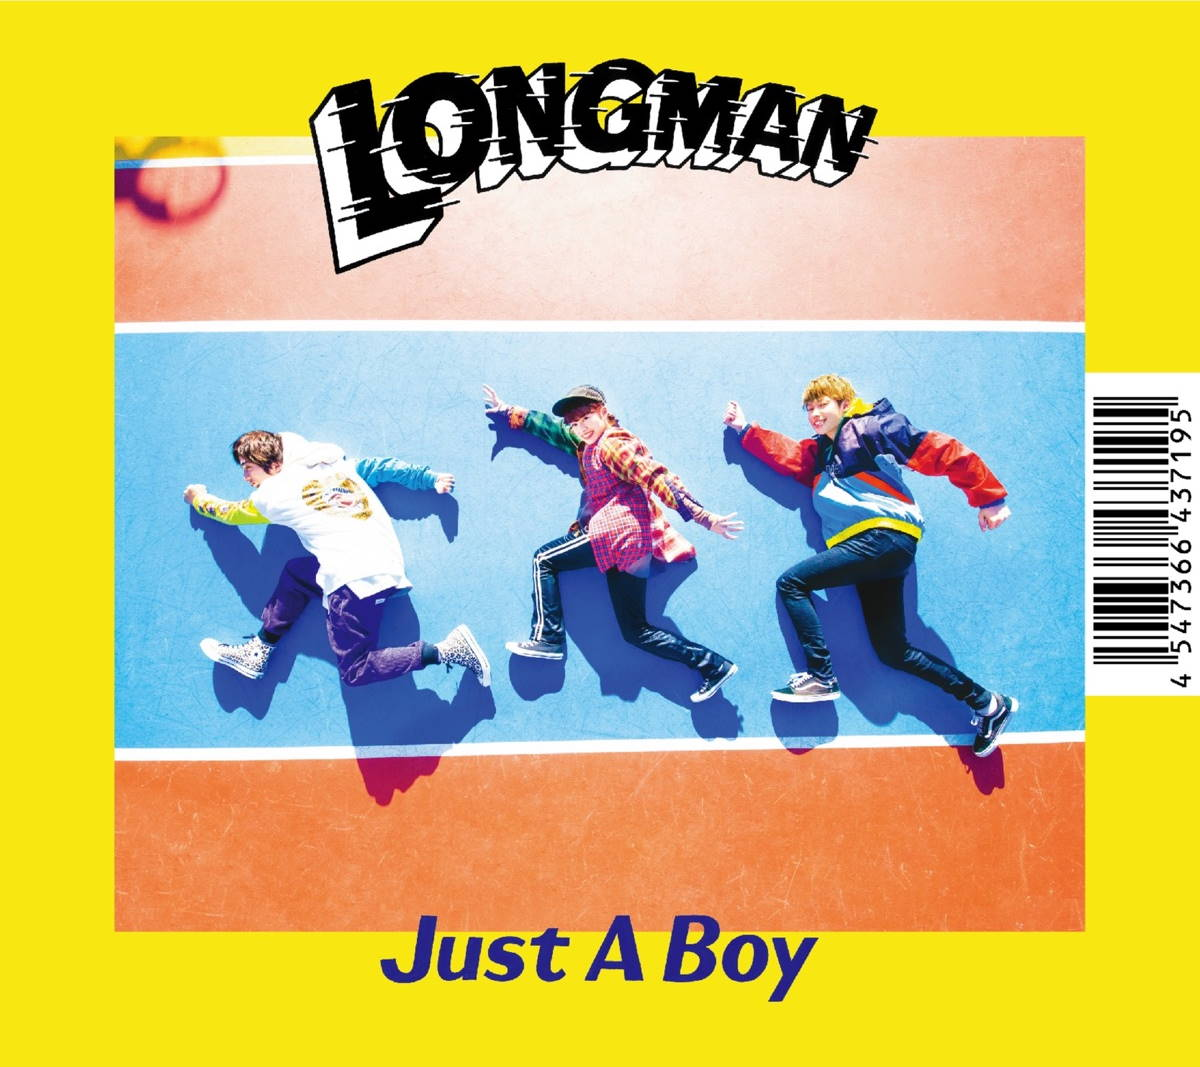 『LONGMAN - Replay』収録の『Just A Boy』ジャケット